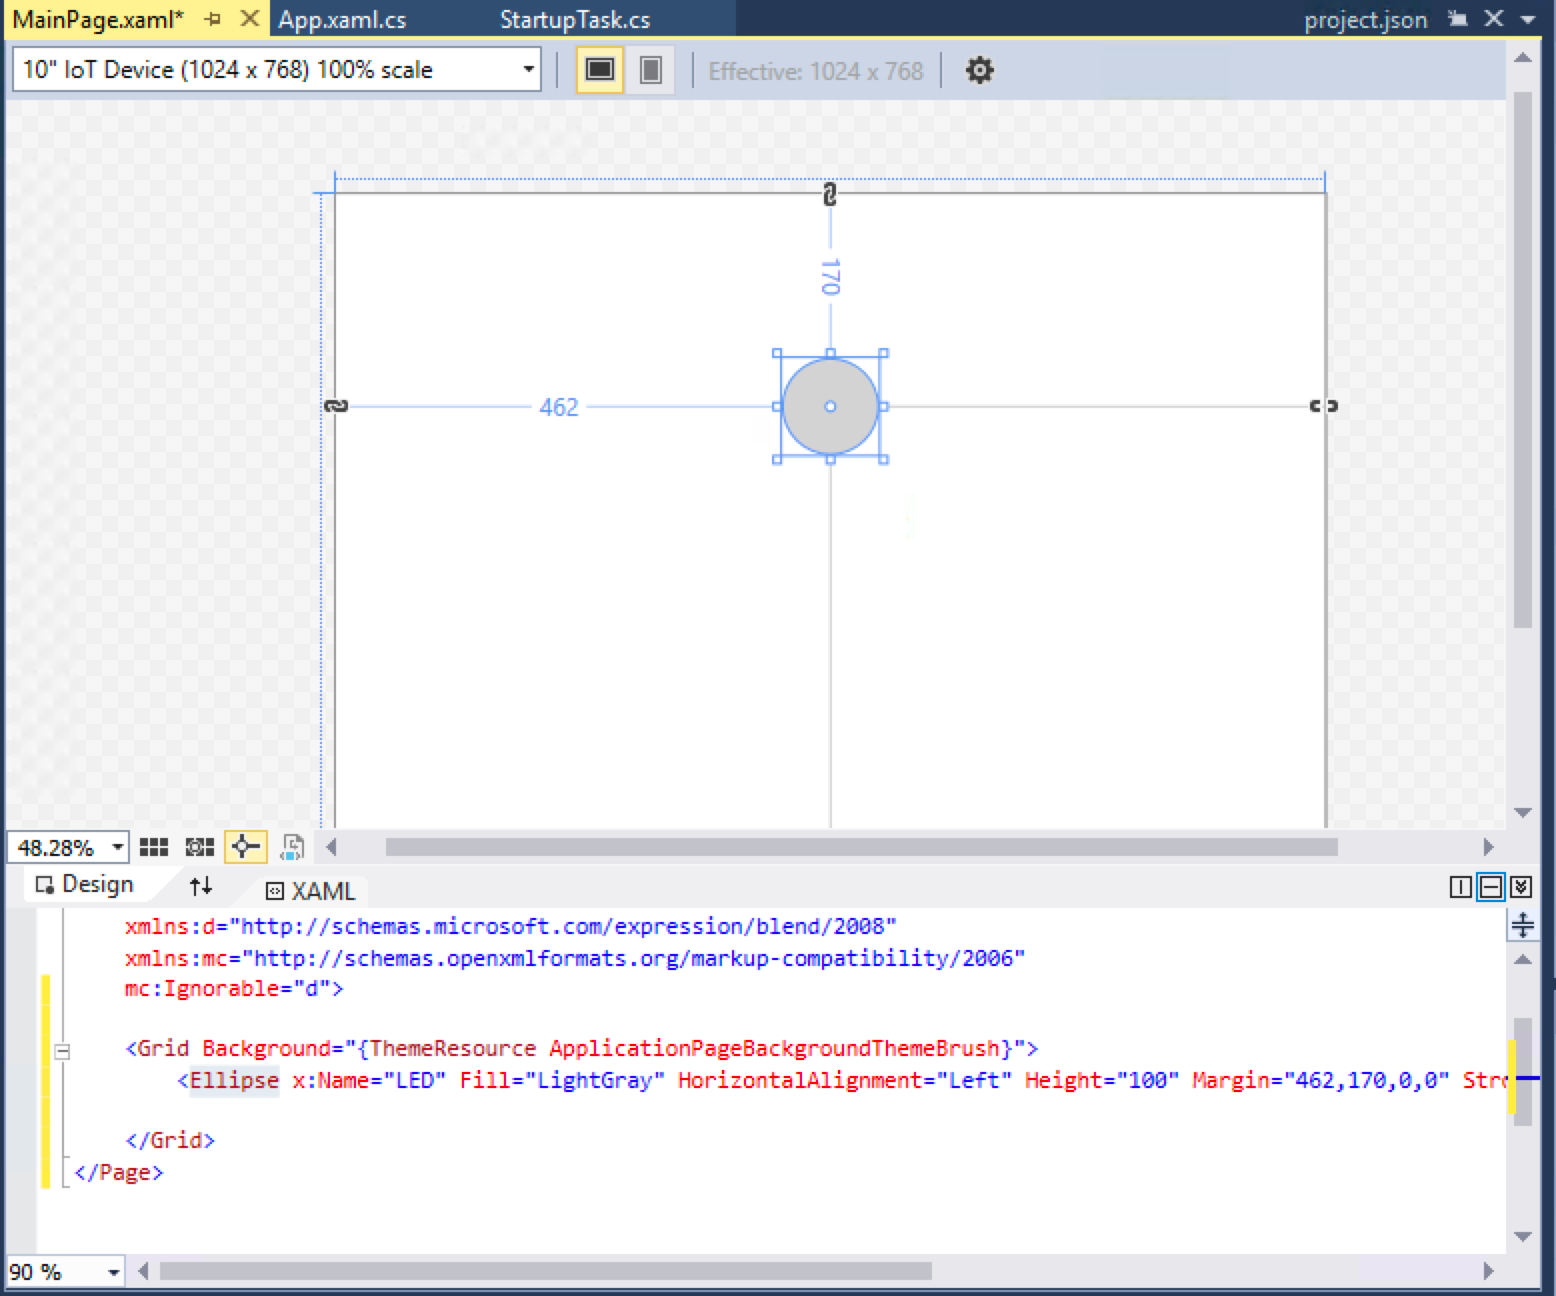 projects_ellipse.png